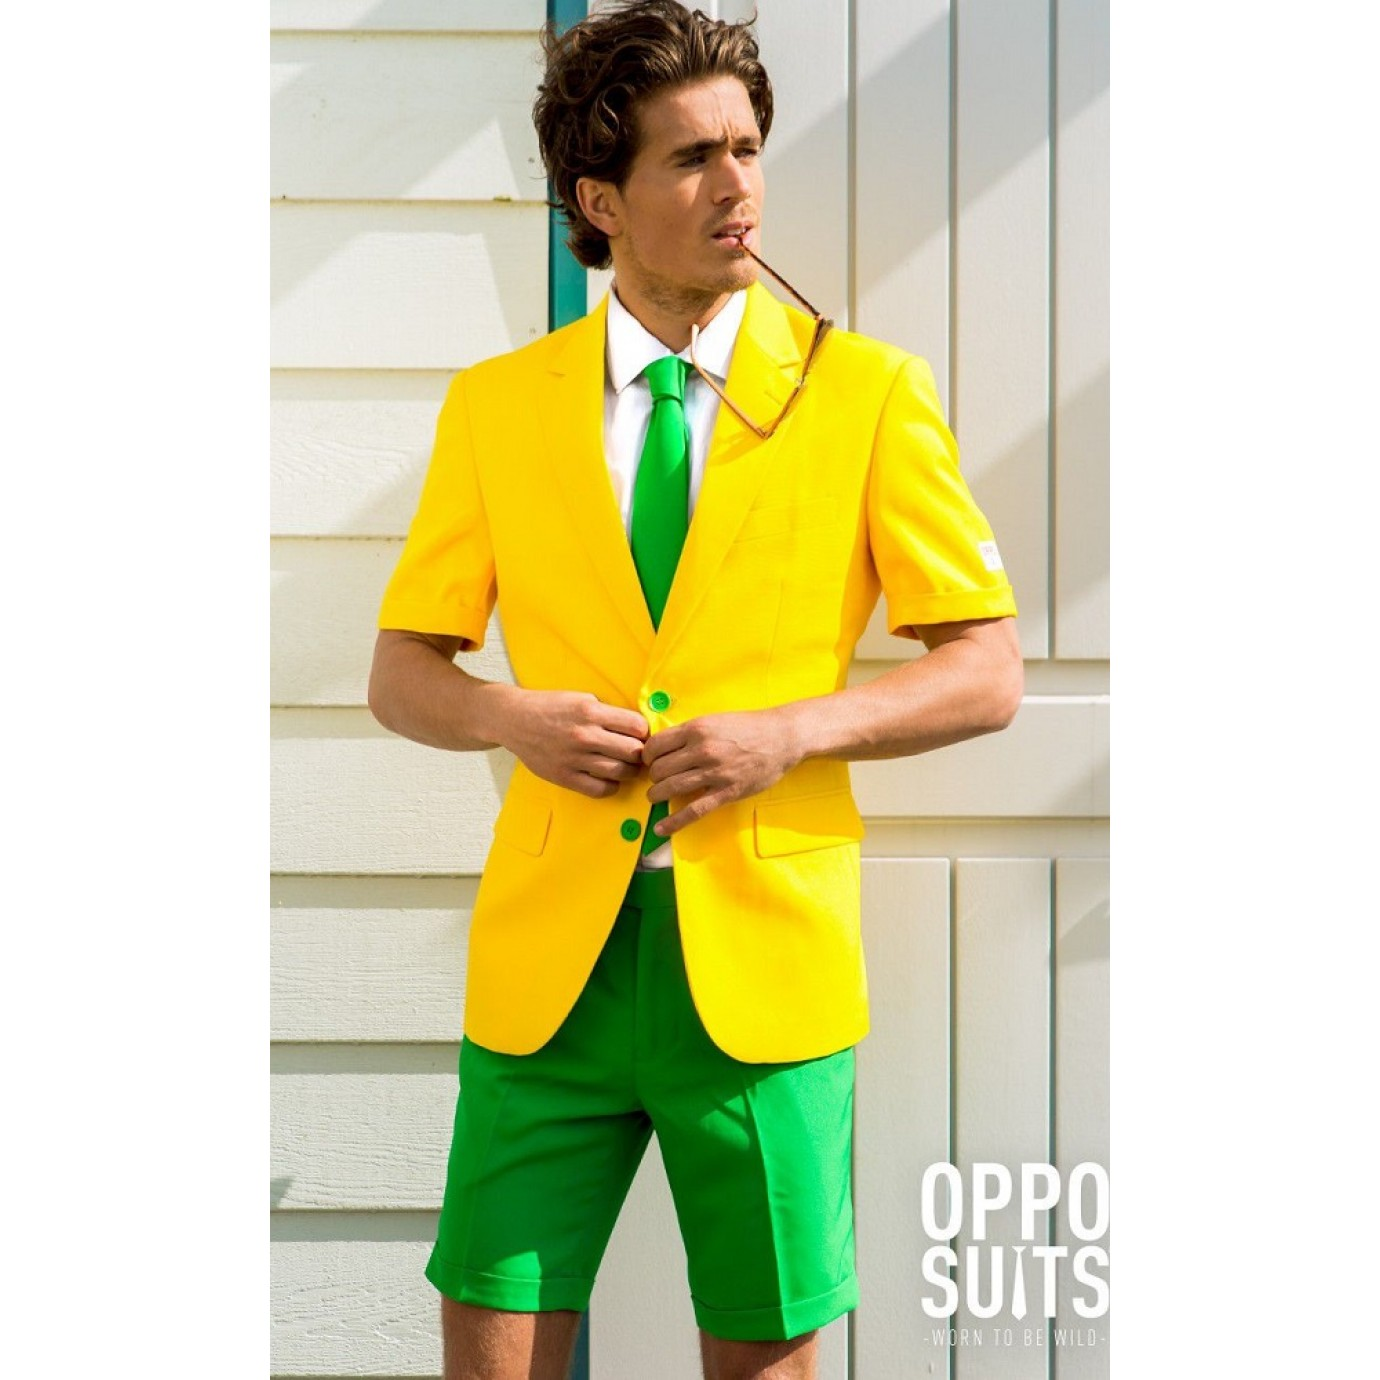 b8ef96e356f781 Adult Costume - Opposuits, Green & Gold Summer | Men's General | Male |  Shop by Size | Costumes | The Party People Shop